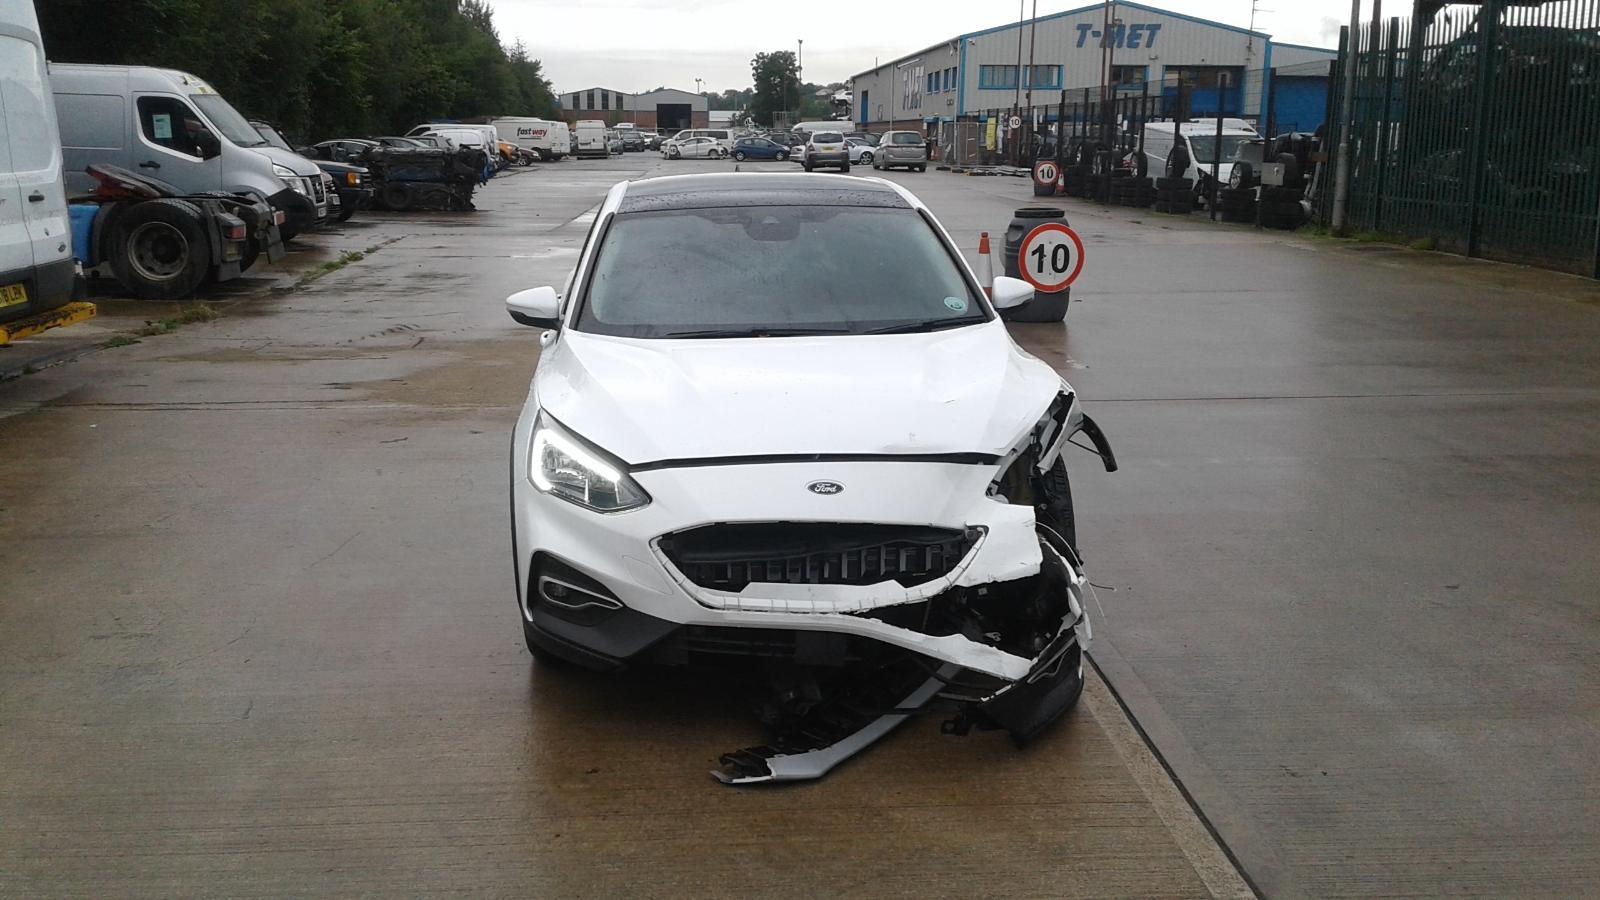 2020 FORD FOCUS ACTIVE FOR SALE £9500 ONO Image